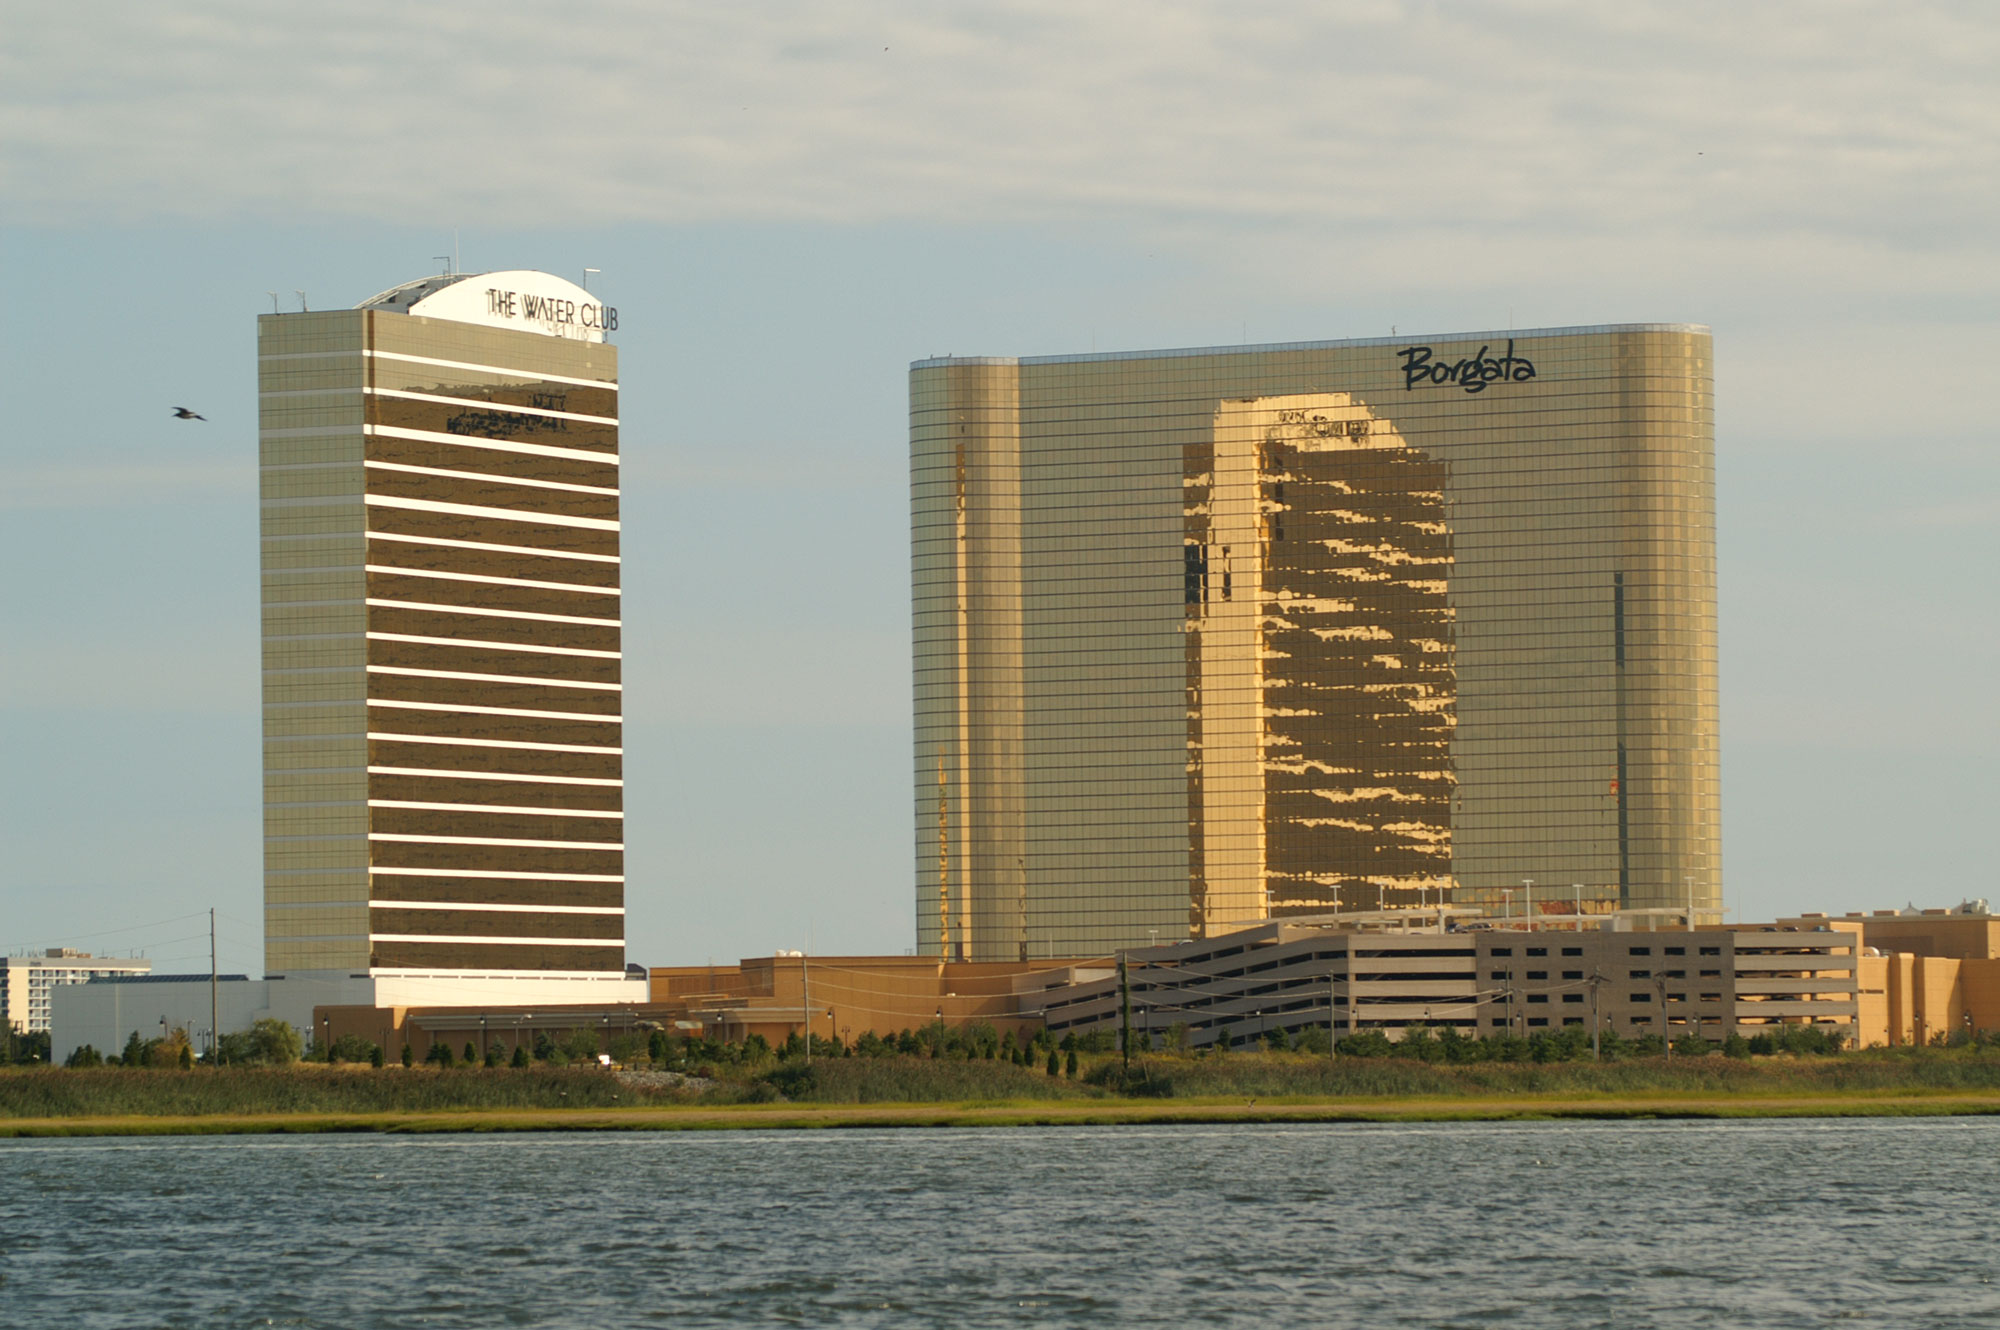 borgata casino atlantic city